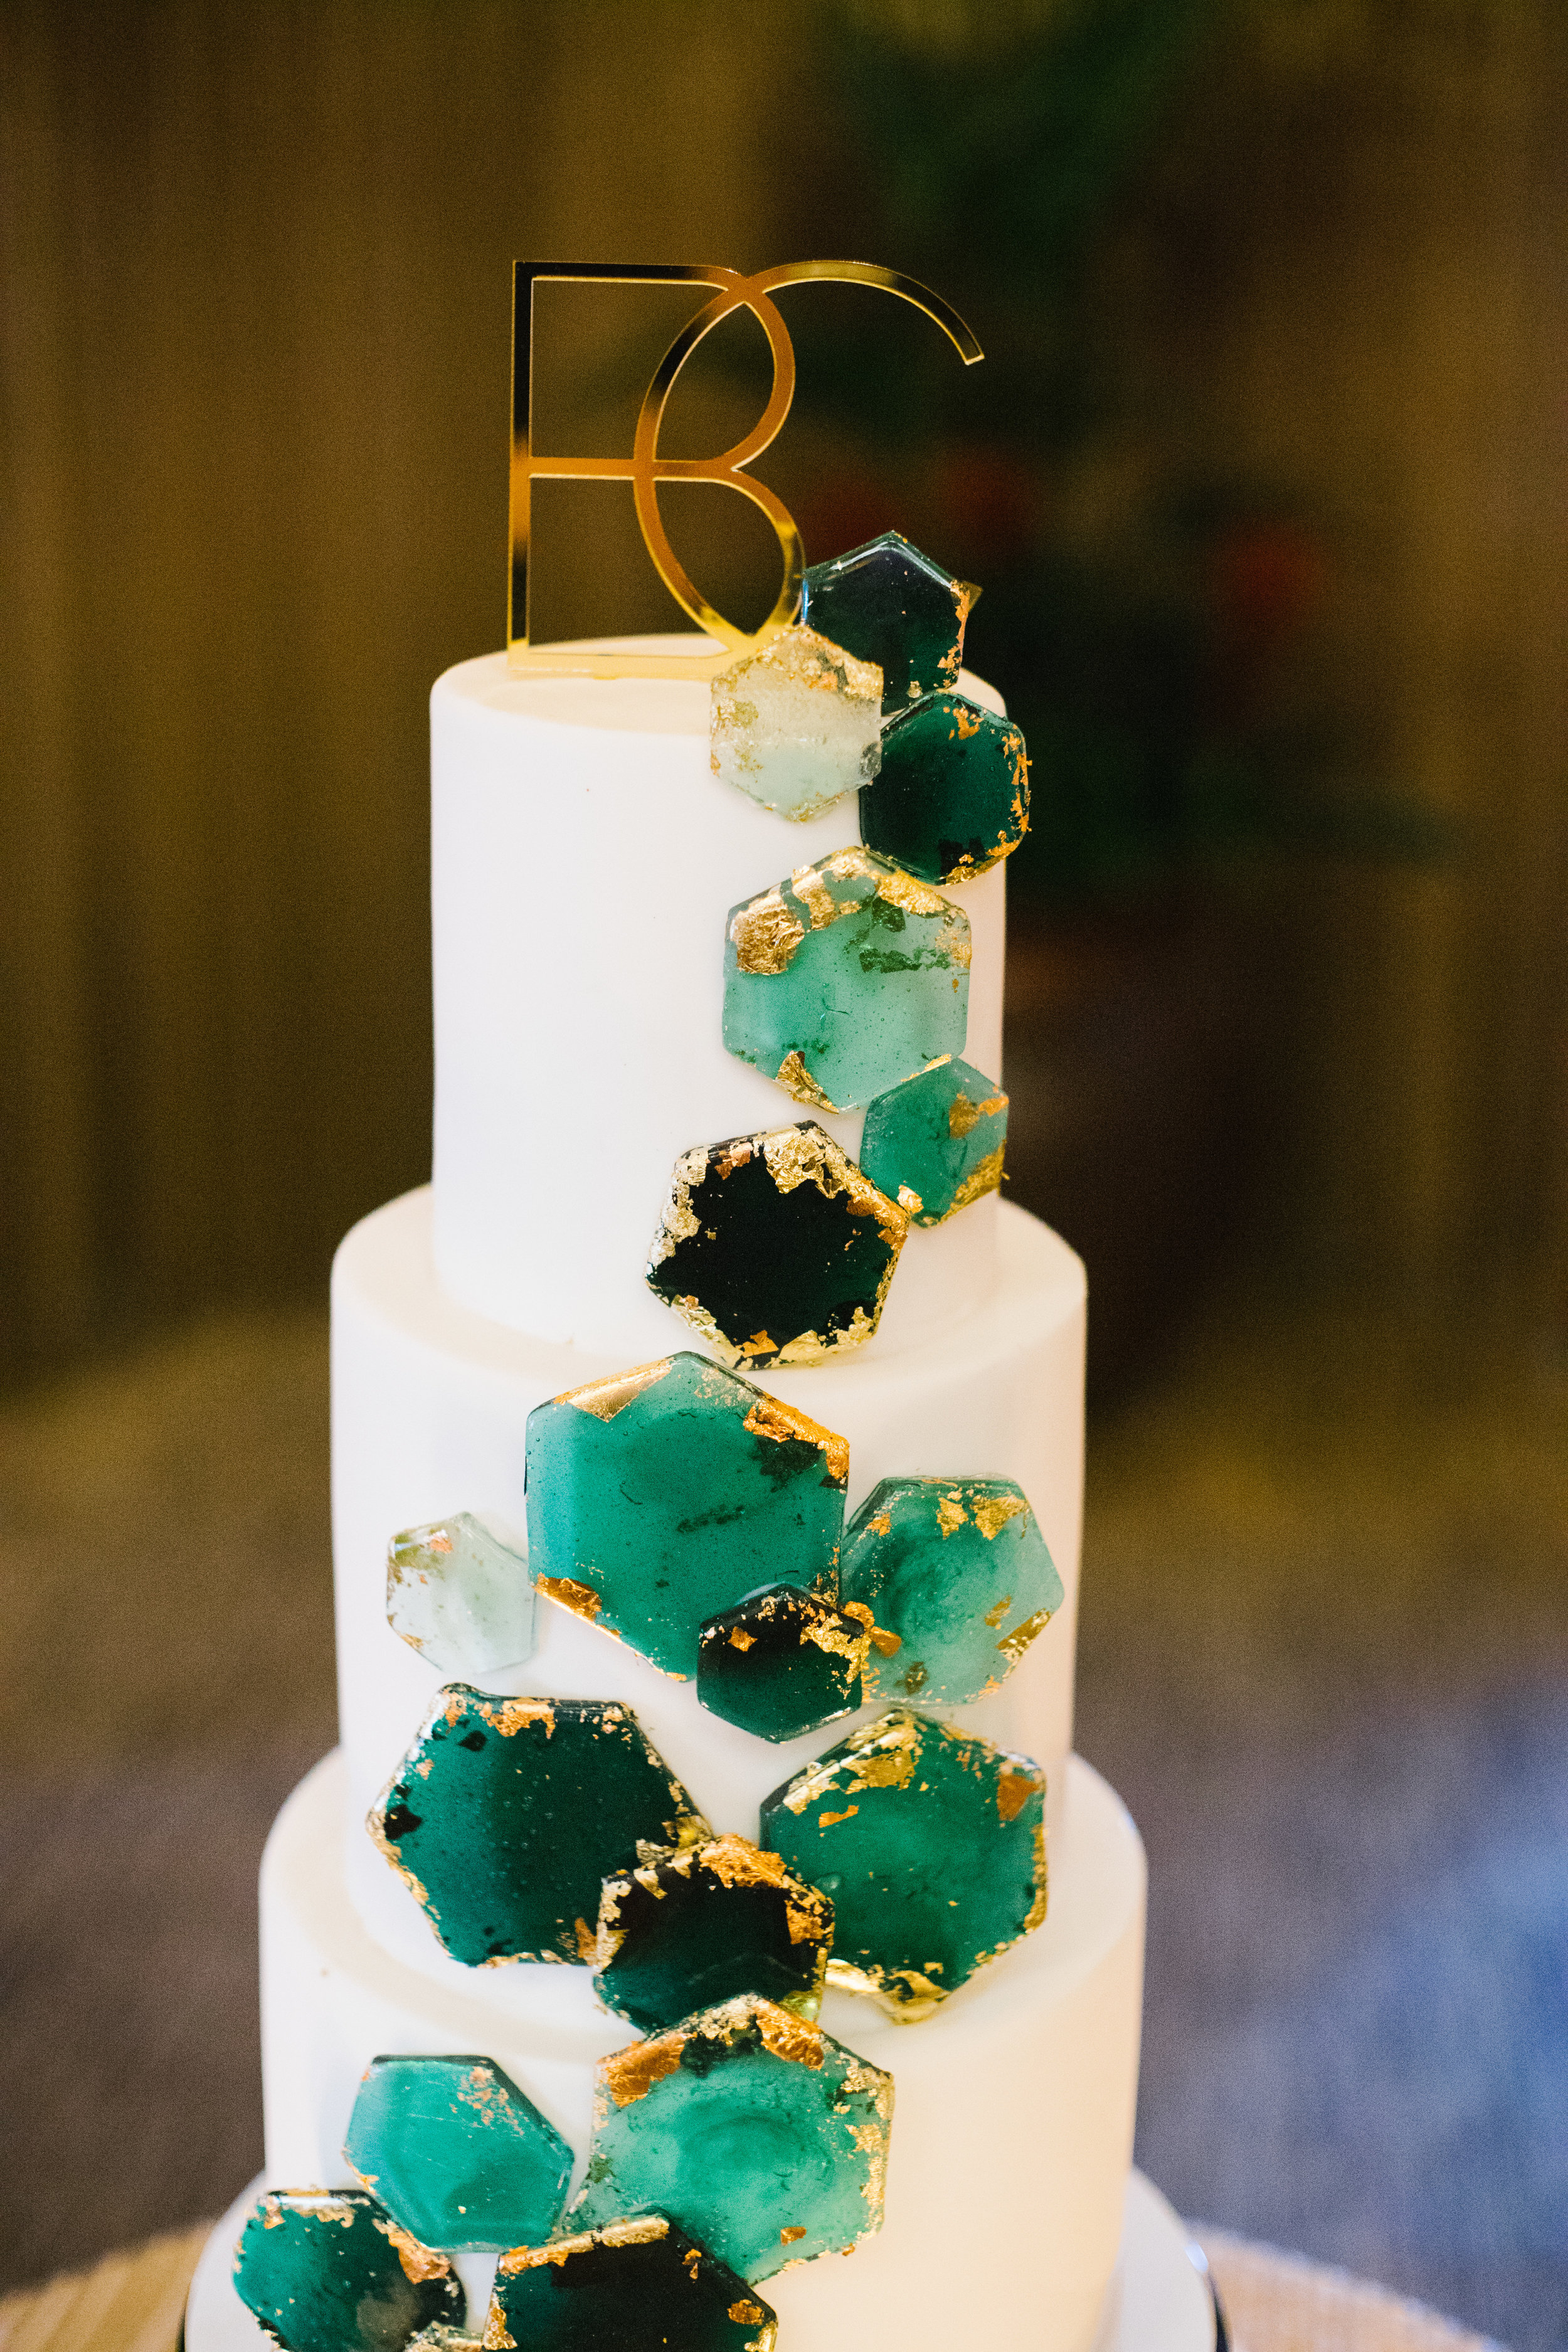 15 wedding cake three tier cake monogram cake green sugar geometric shapes green gold sugar art green wedding cake geometric wedding cake simple wedding cake Life Design Events photos by Keith and Melissa Photography.jpg